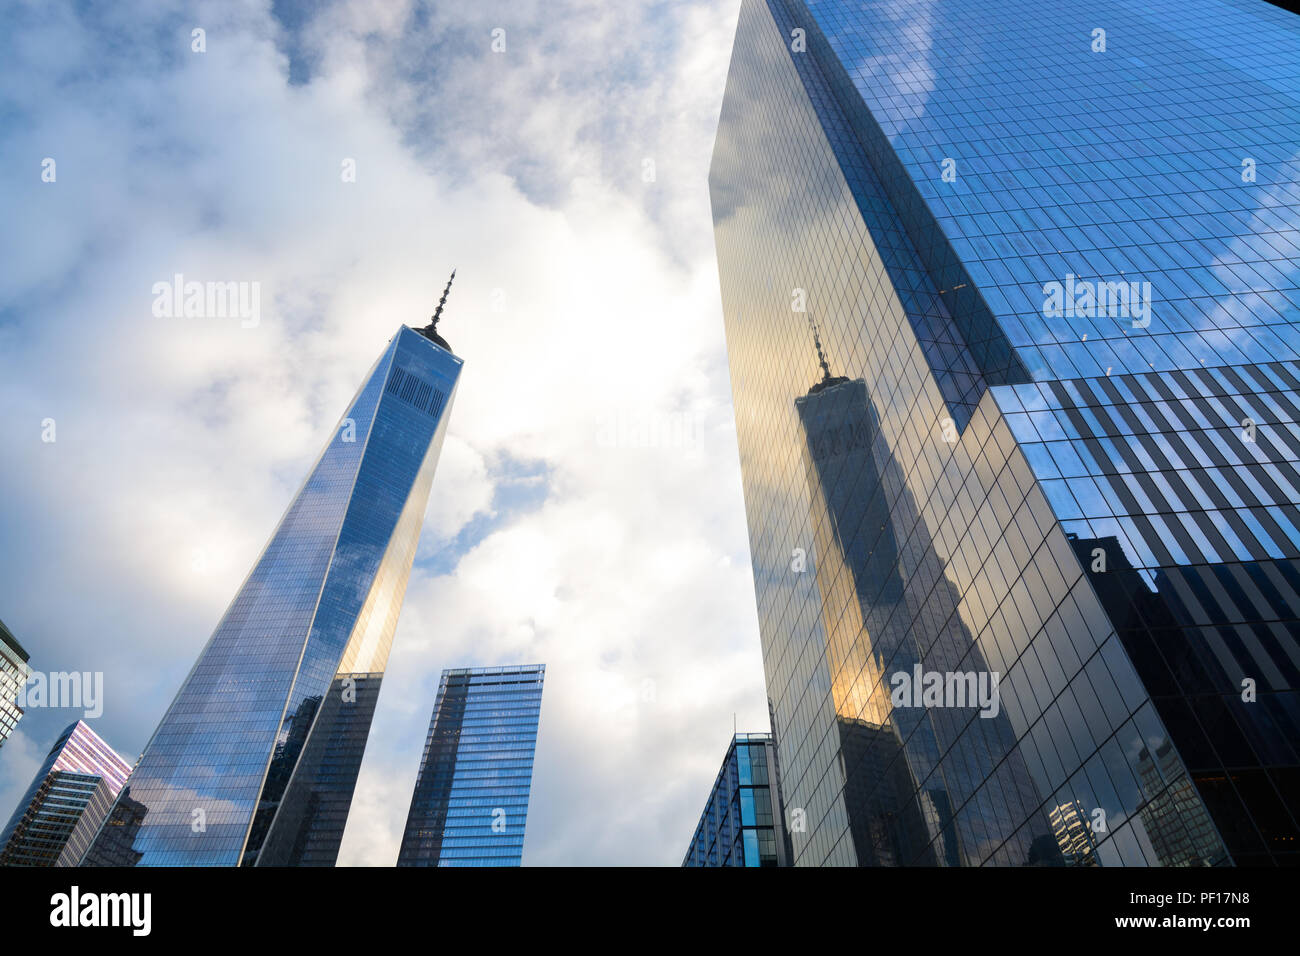 Un WTC reflétée dans le mur rideau en verre de 4 WTC dans Lower Manhattan, New York City. Photo Stock